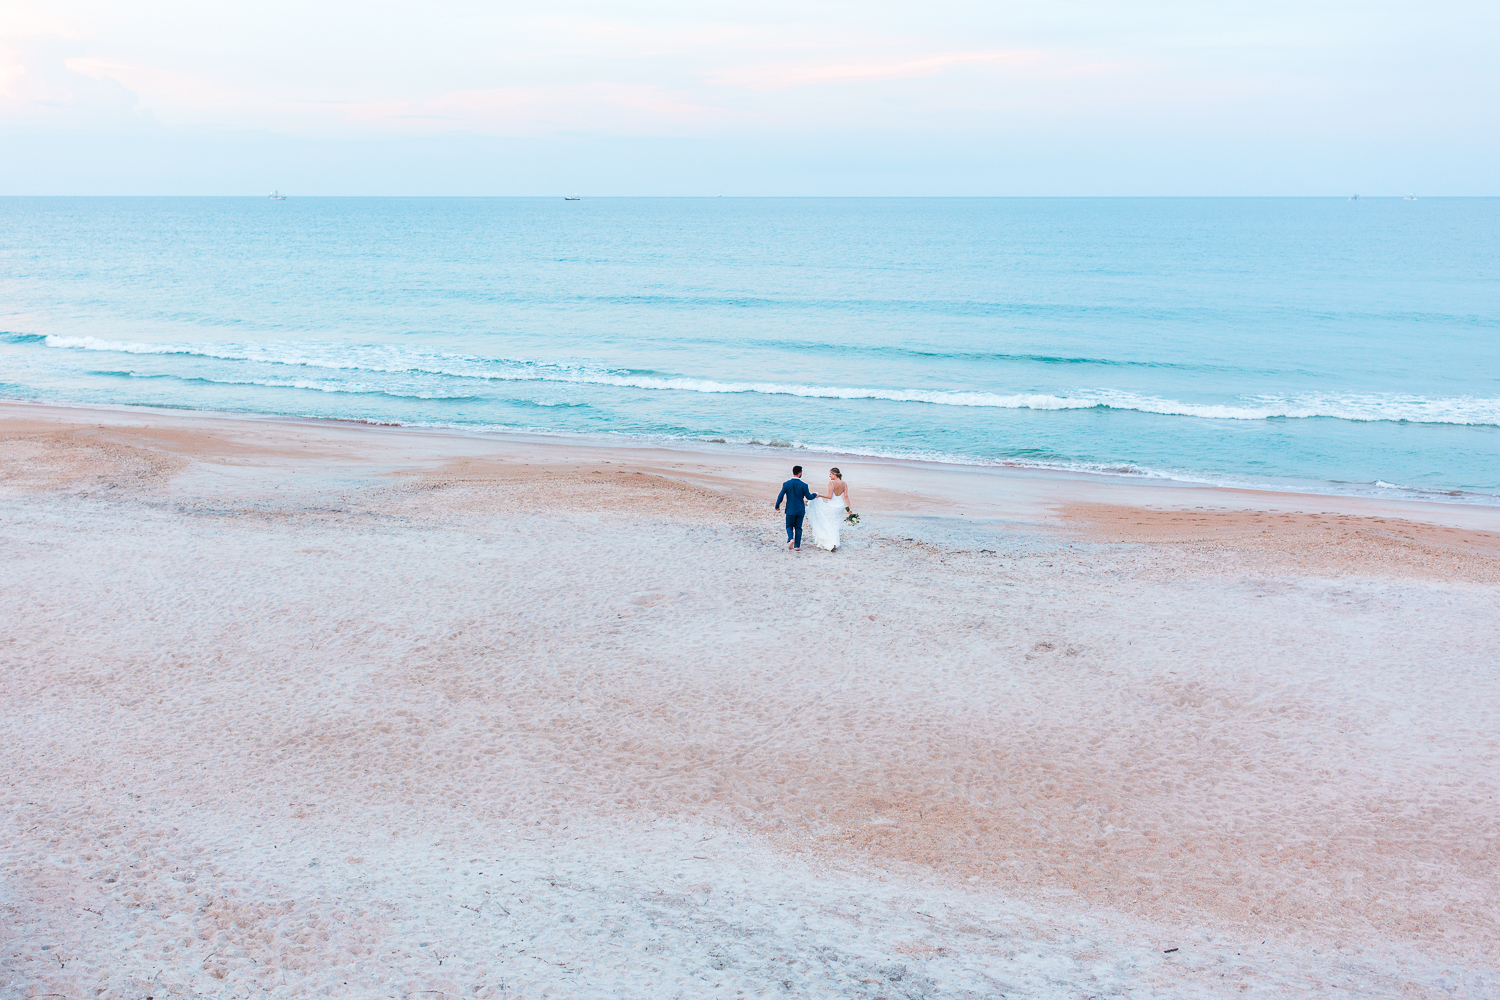 serenata beach club wedding picture ideas in st.augustine fl- bride and groom running to the beach during sunset